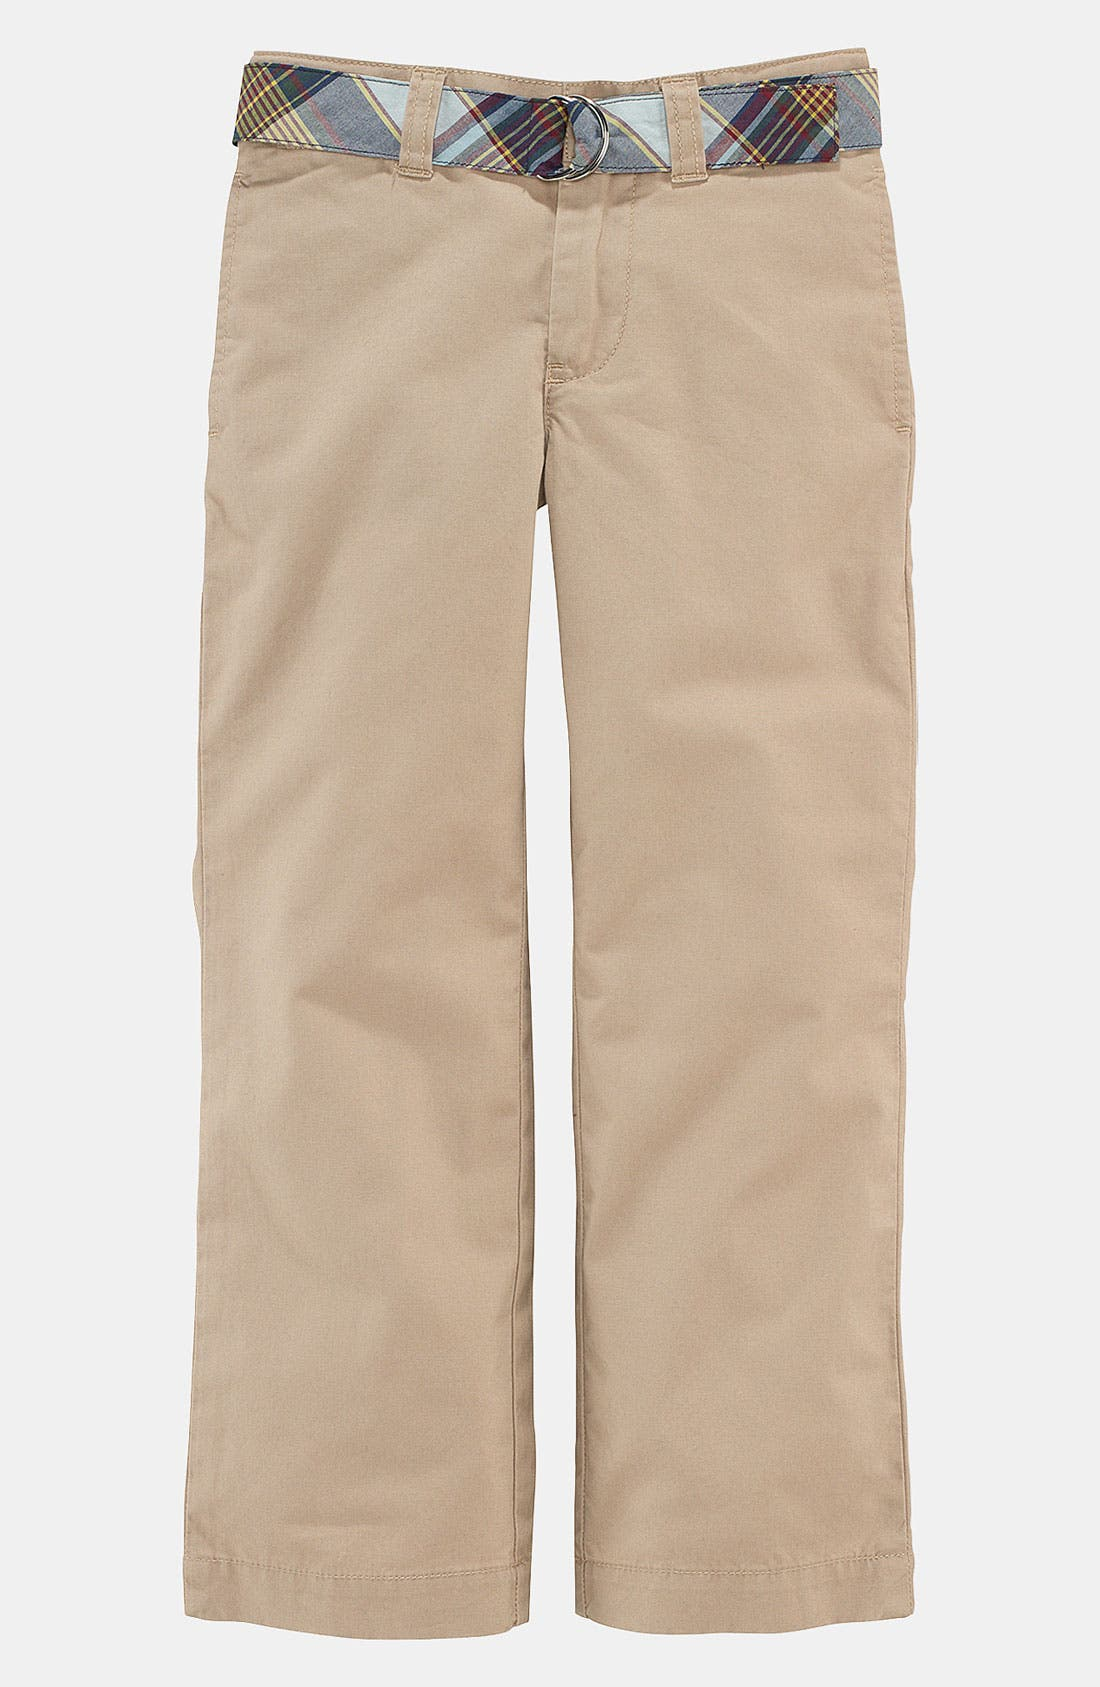 Alternate Image 1 Selected - Ralph Lauren Chinos (Toddler)